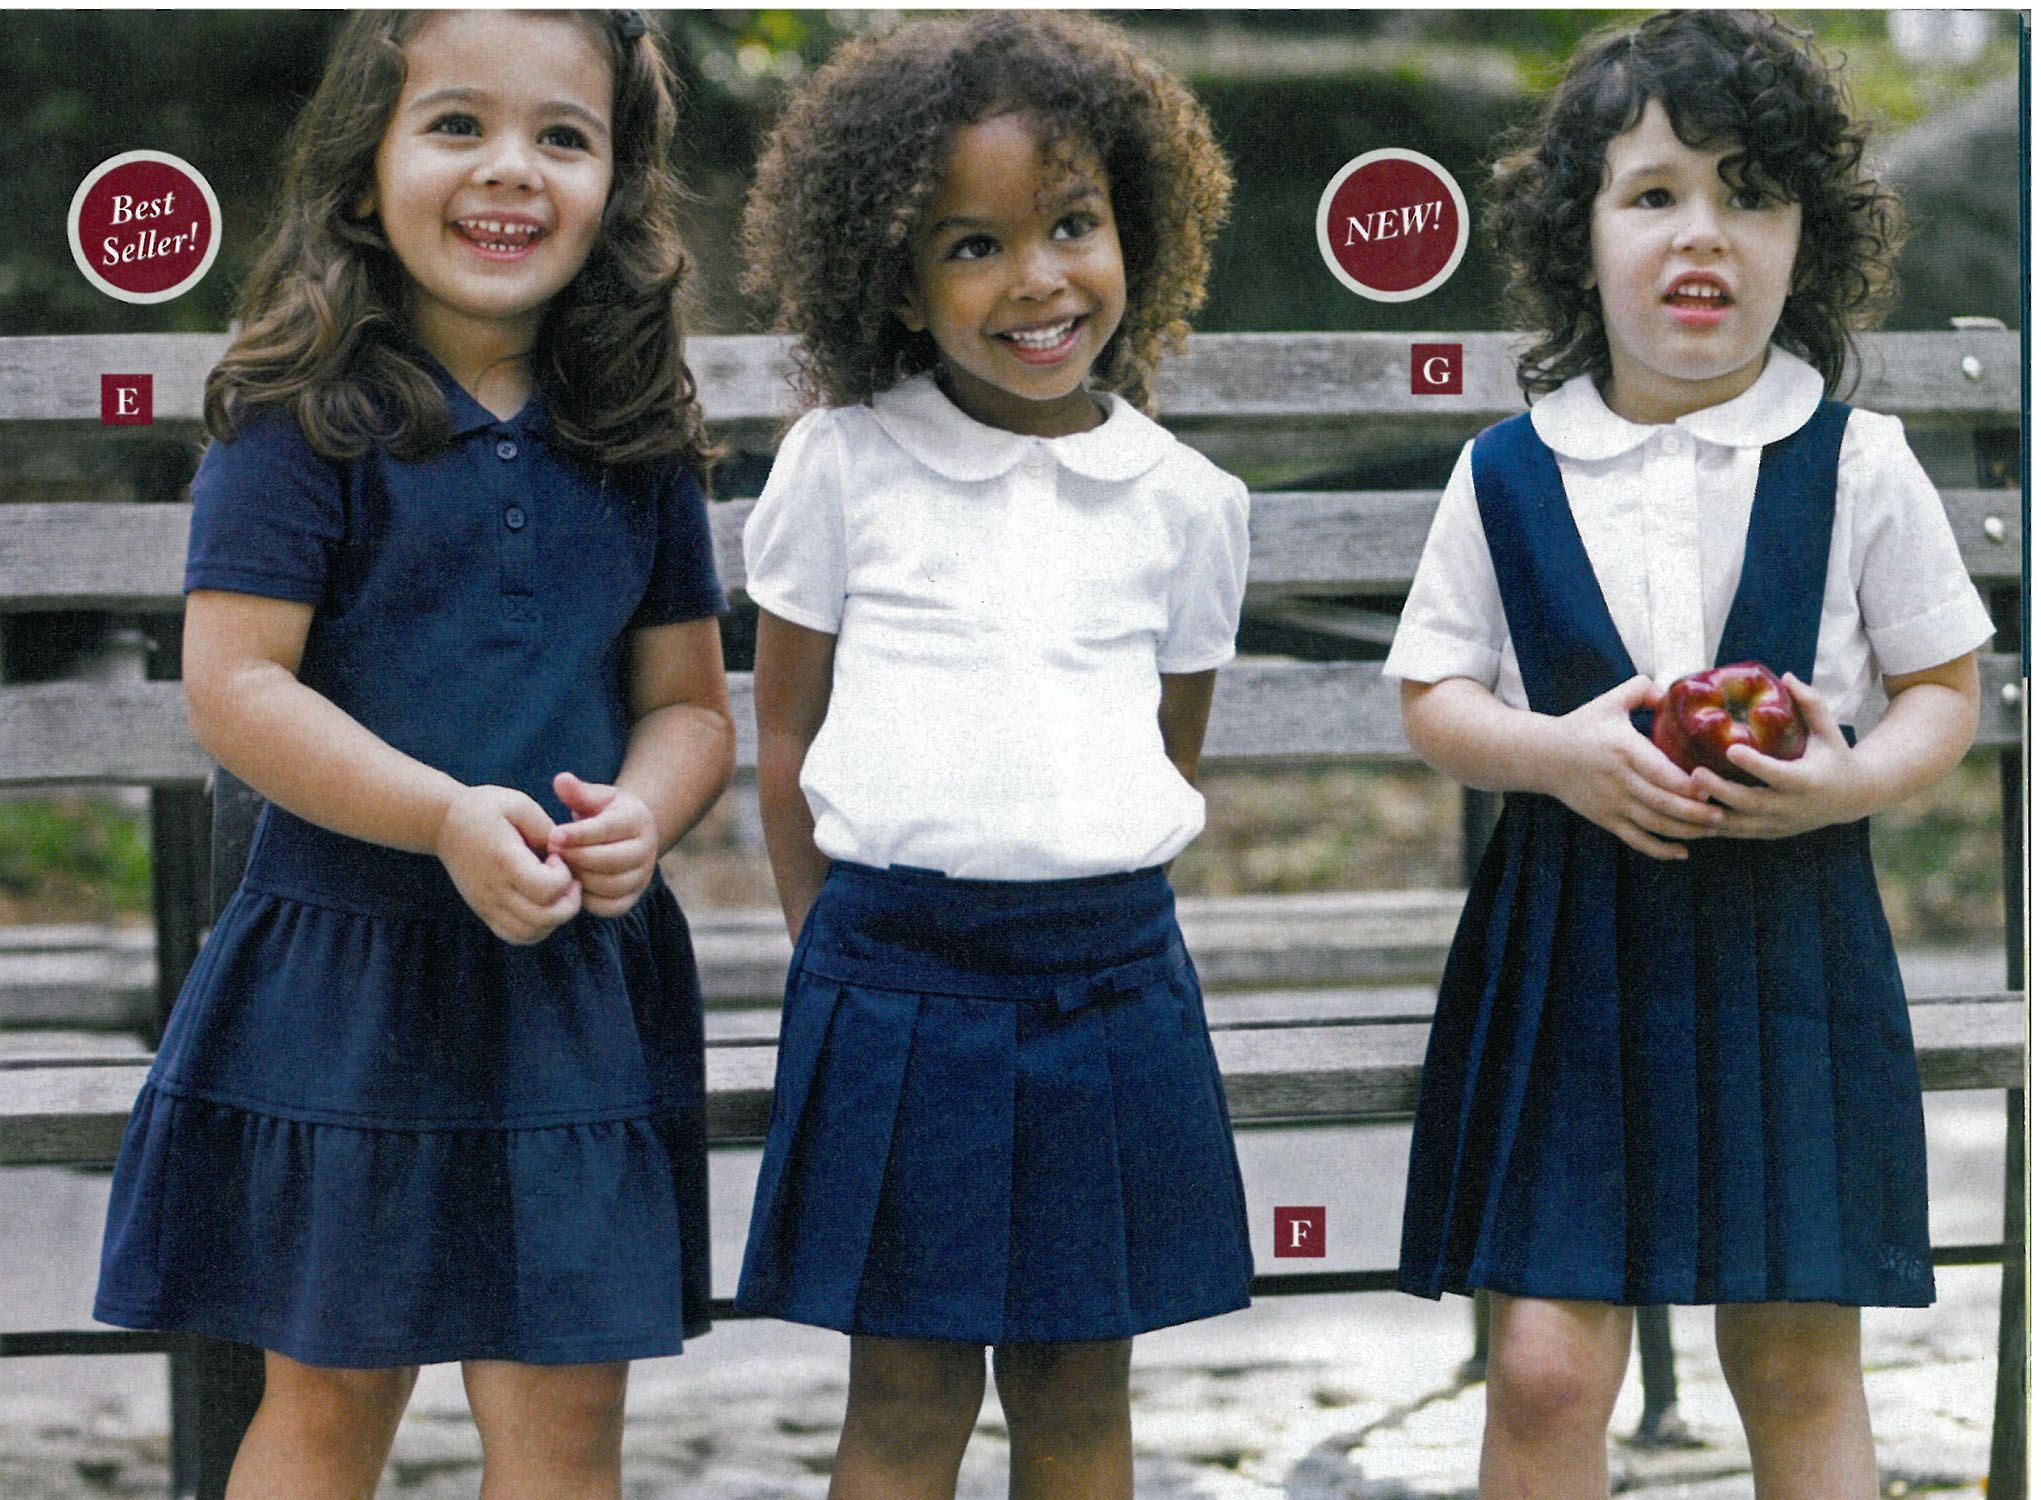 Find toddler girl school uniforms at Oshkosh, your one-stop place for uniform pants, shirts and dresses for your little girl.